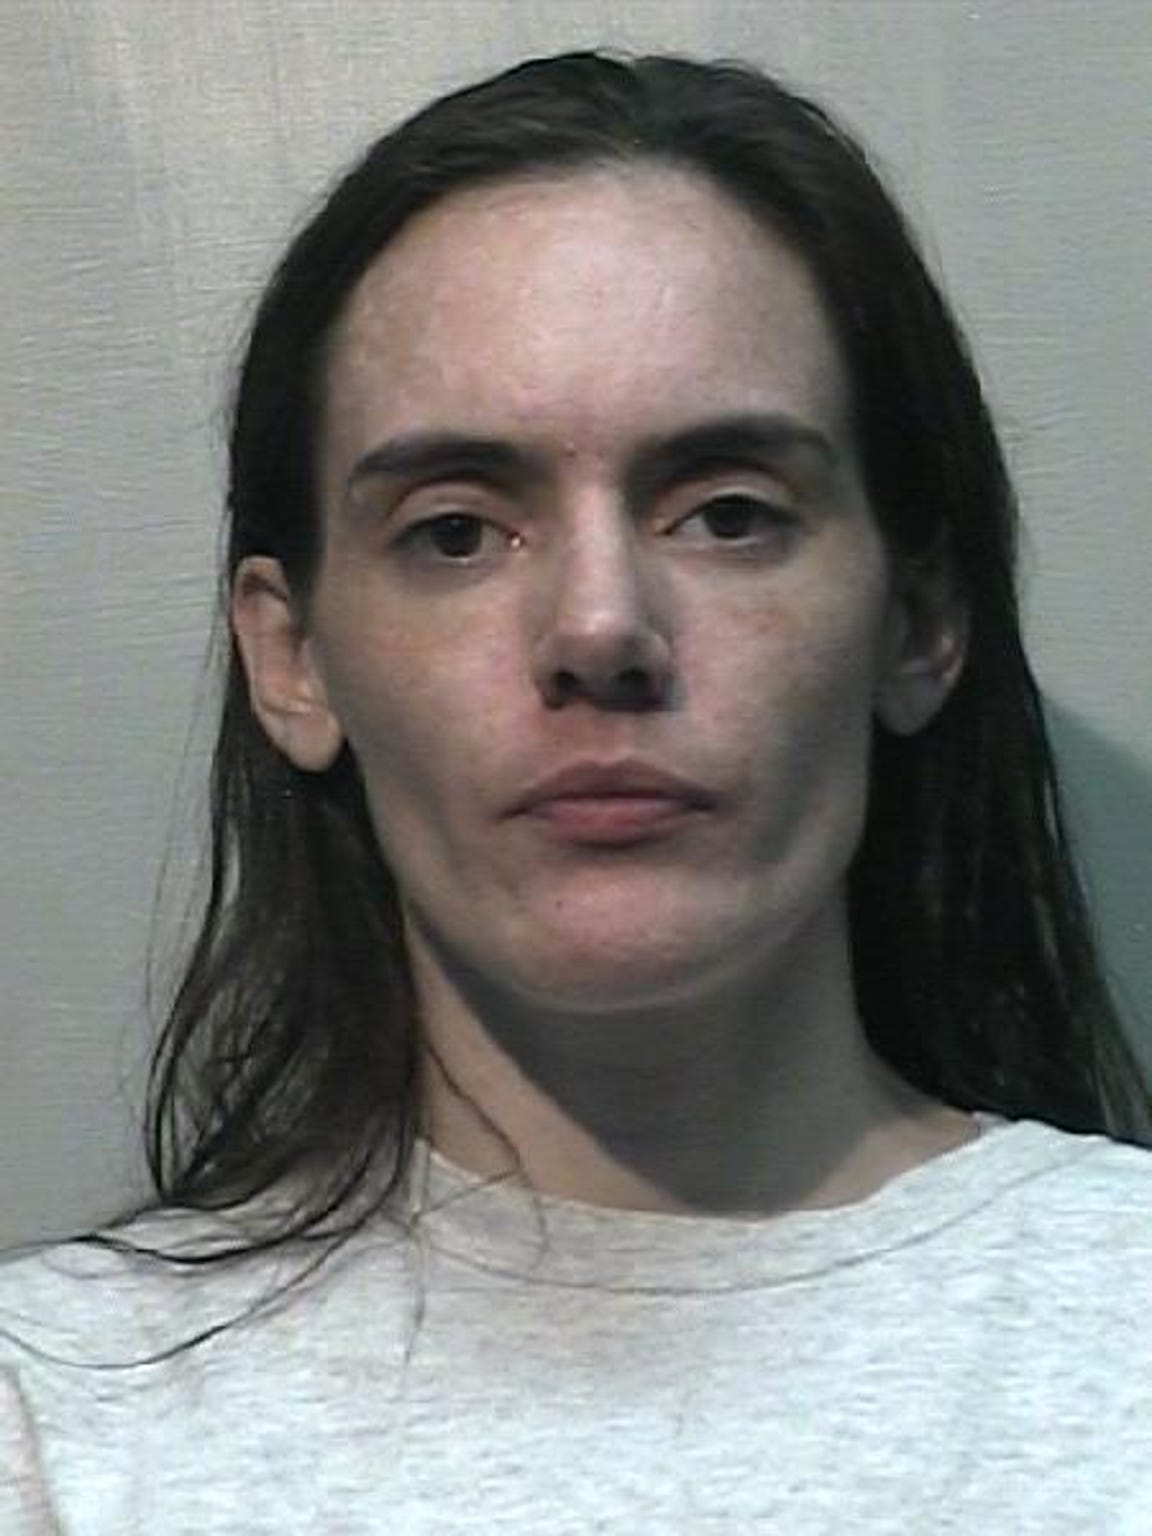 Trista Chisholm when she arrived in state prison from the Kitsap County Jail, August 2017.